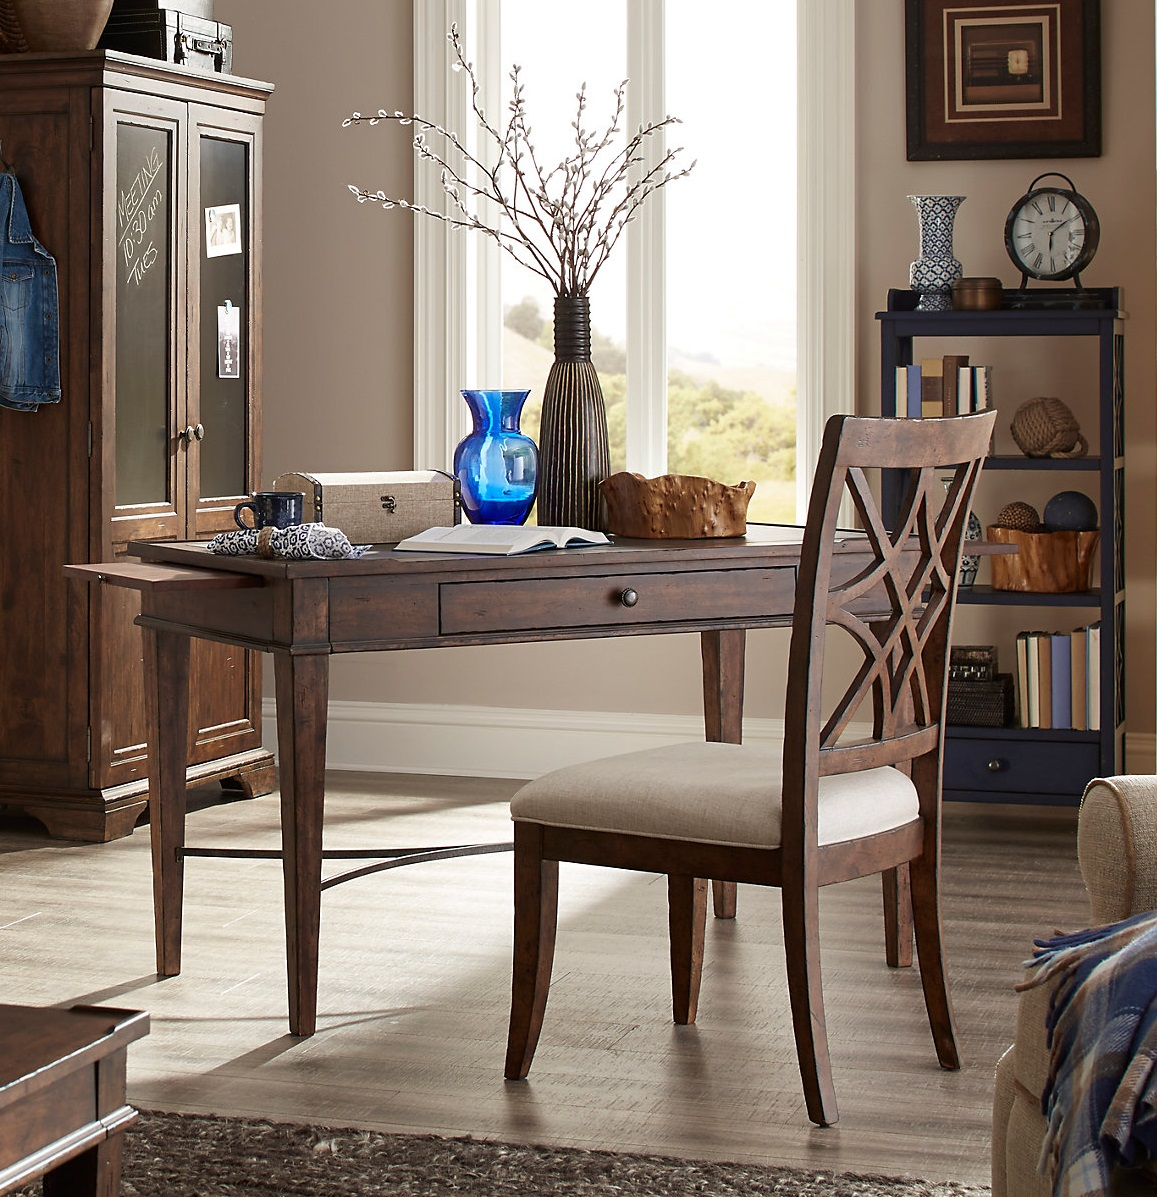 Post image for What to Do with a Dining Room You Don't Use